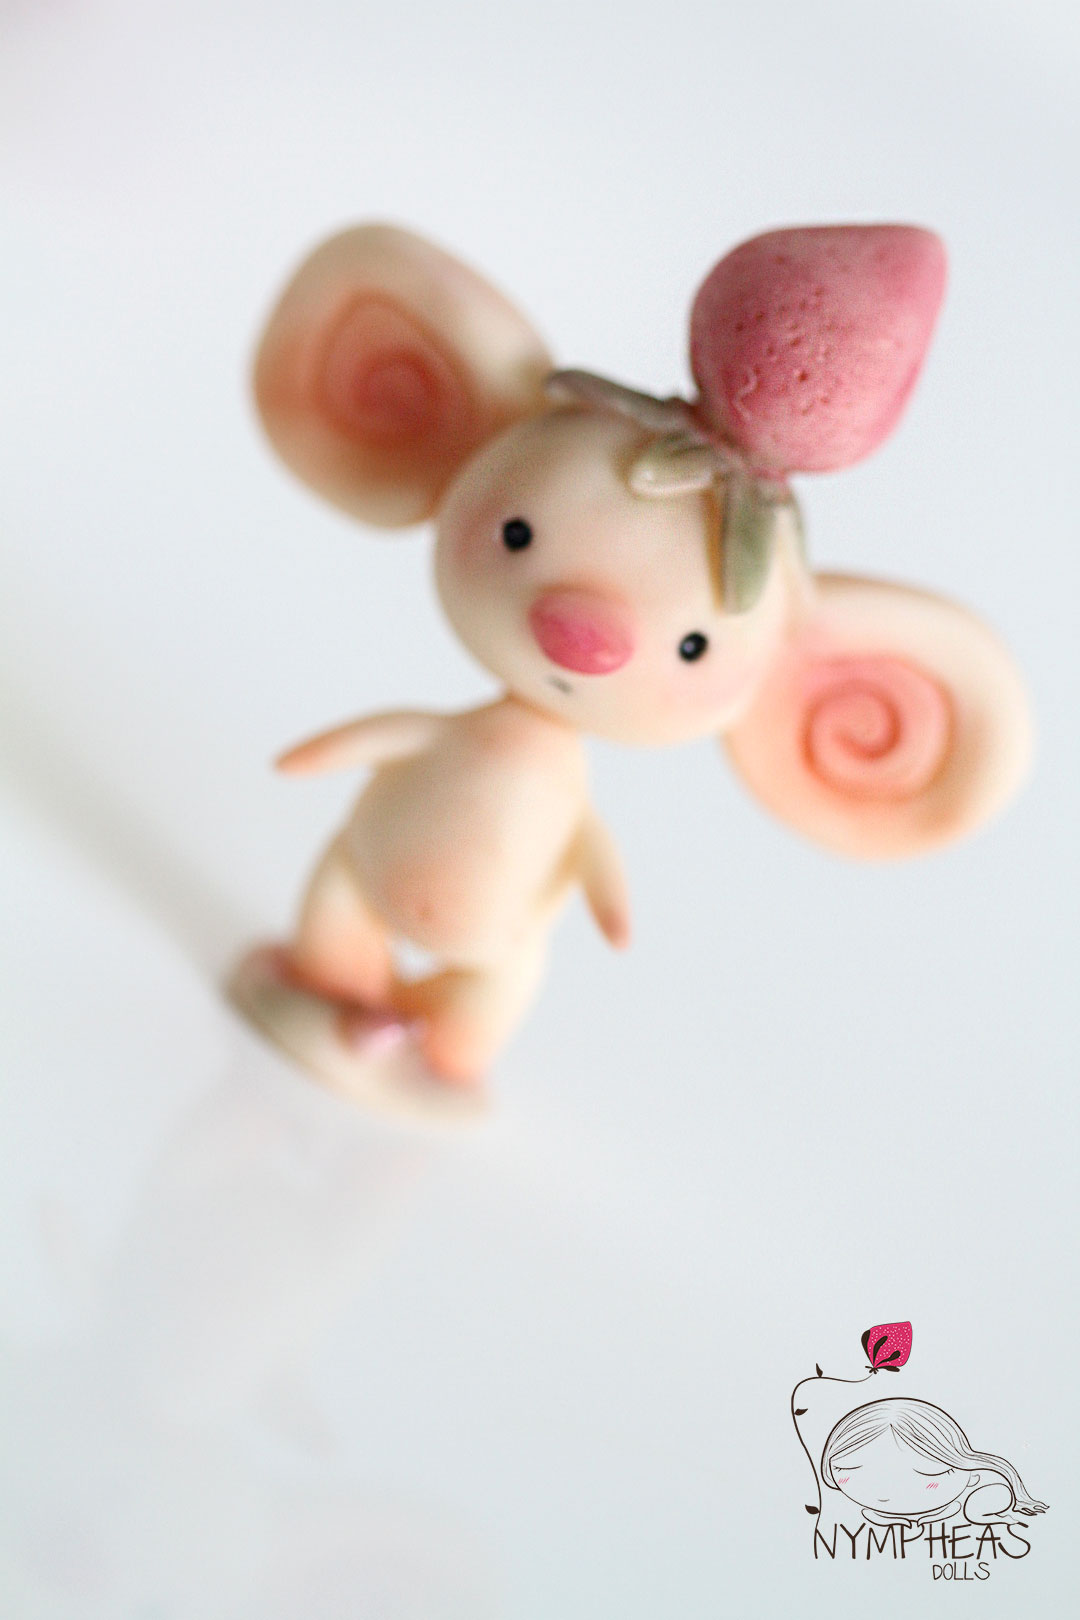 malicie-cream-nympheas-dolls-040